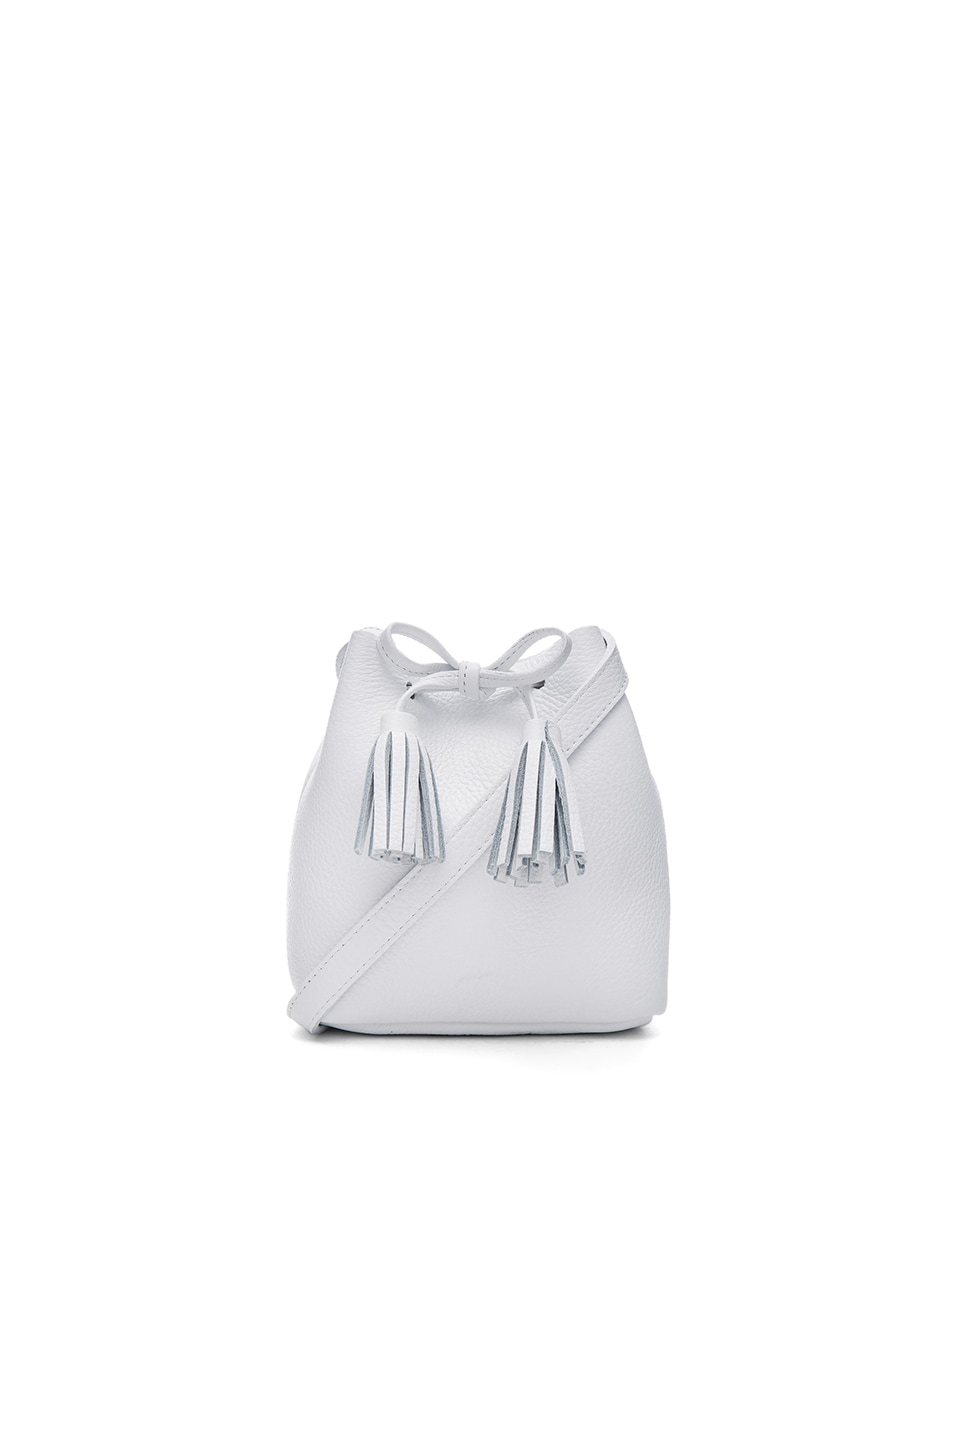 Shaffer Greta Bucket Bag in Pebbled White